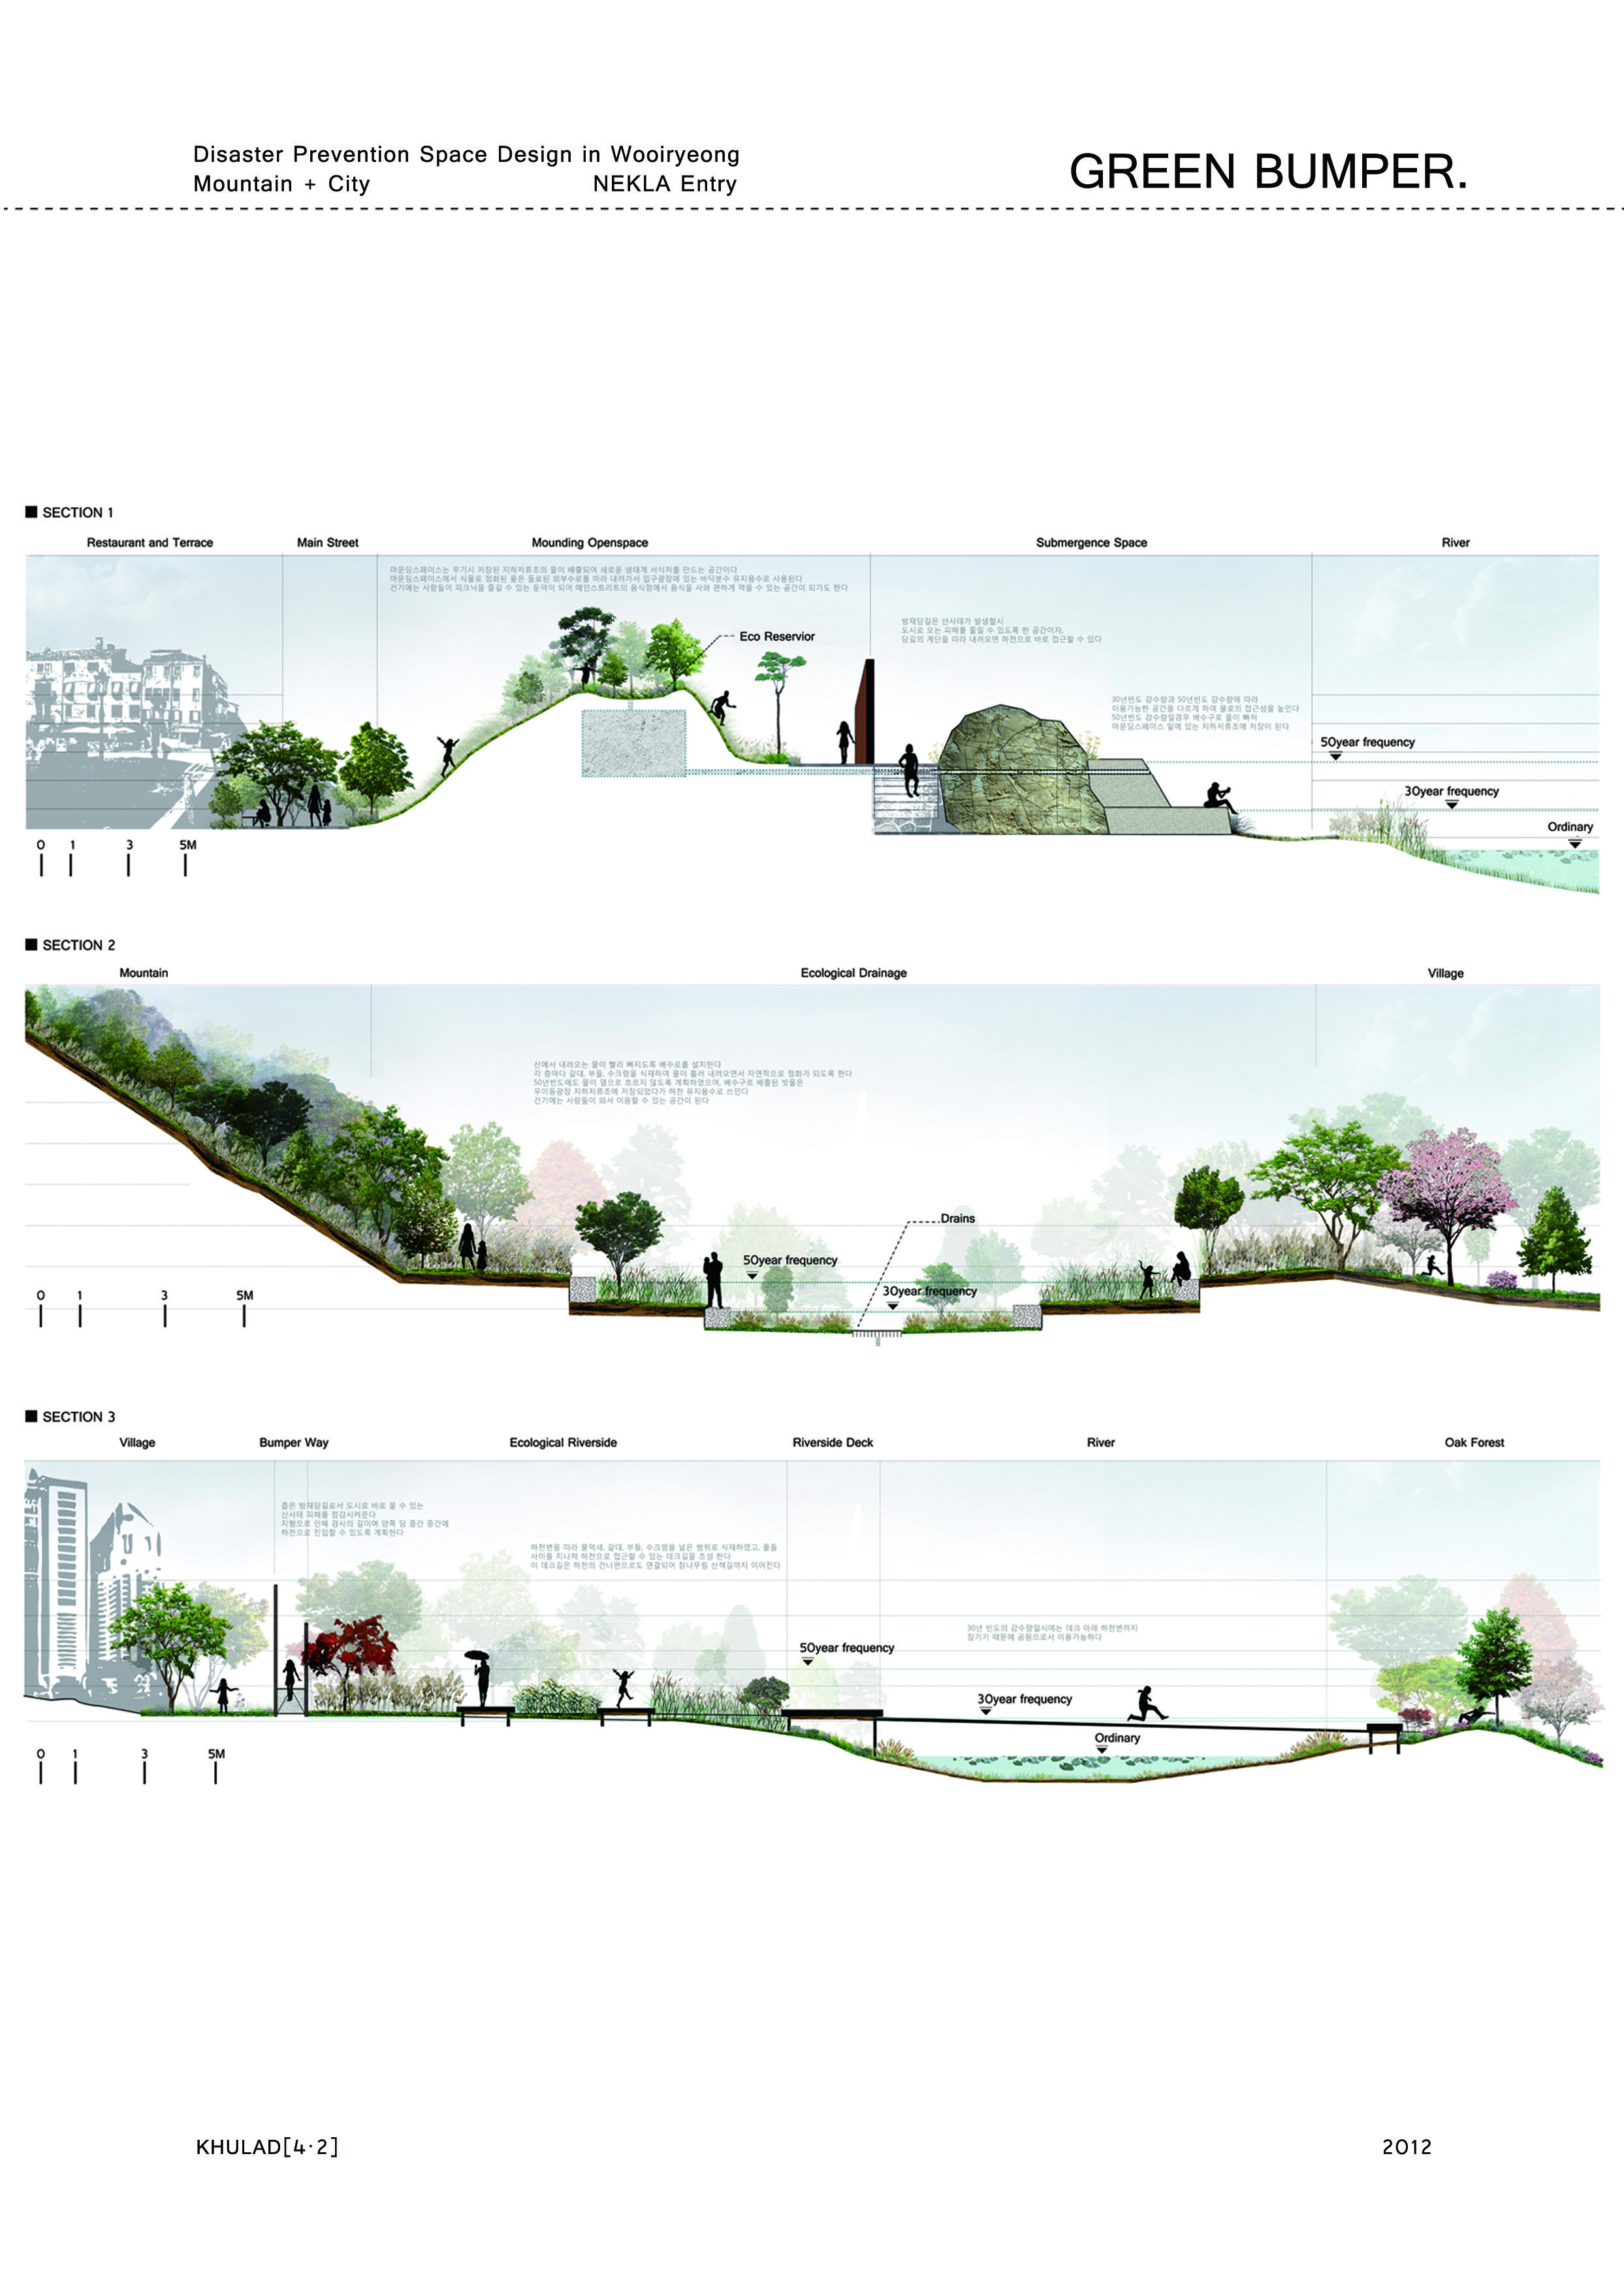 Representation Of Ecological Buffer Between City And River